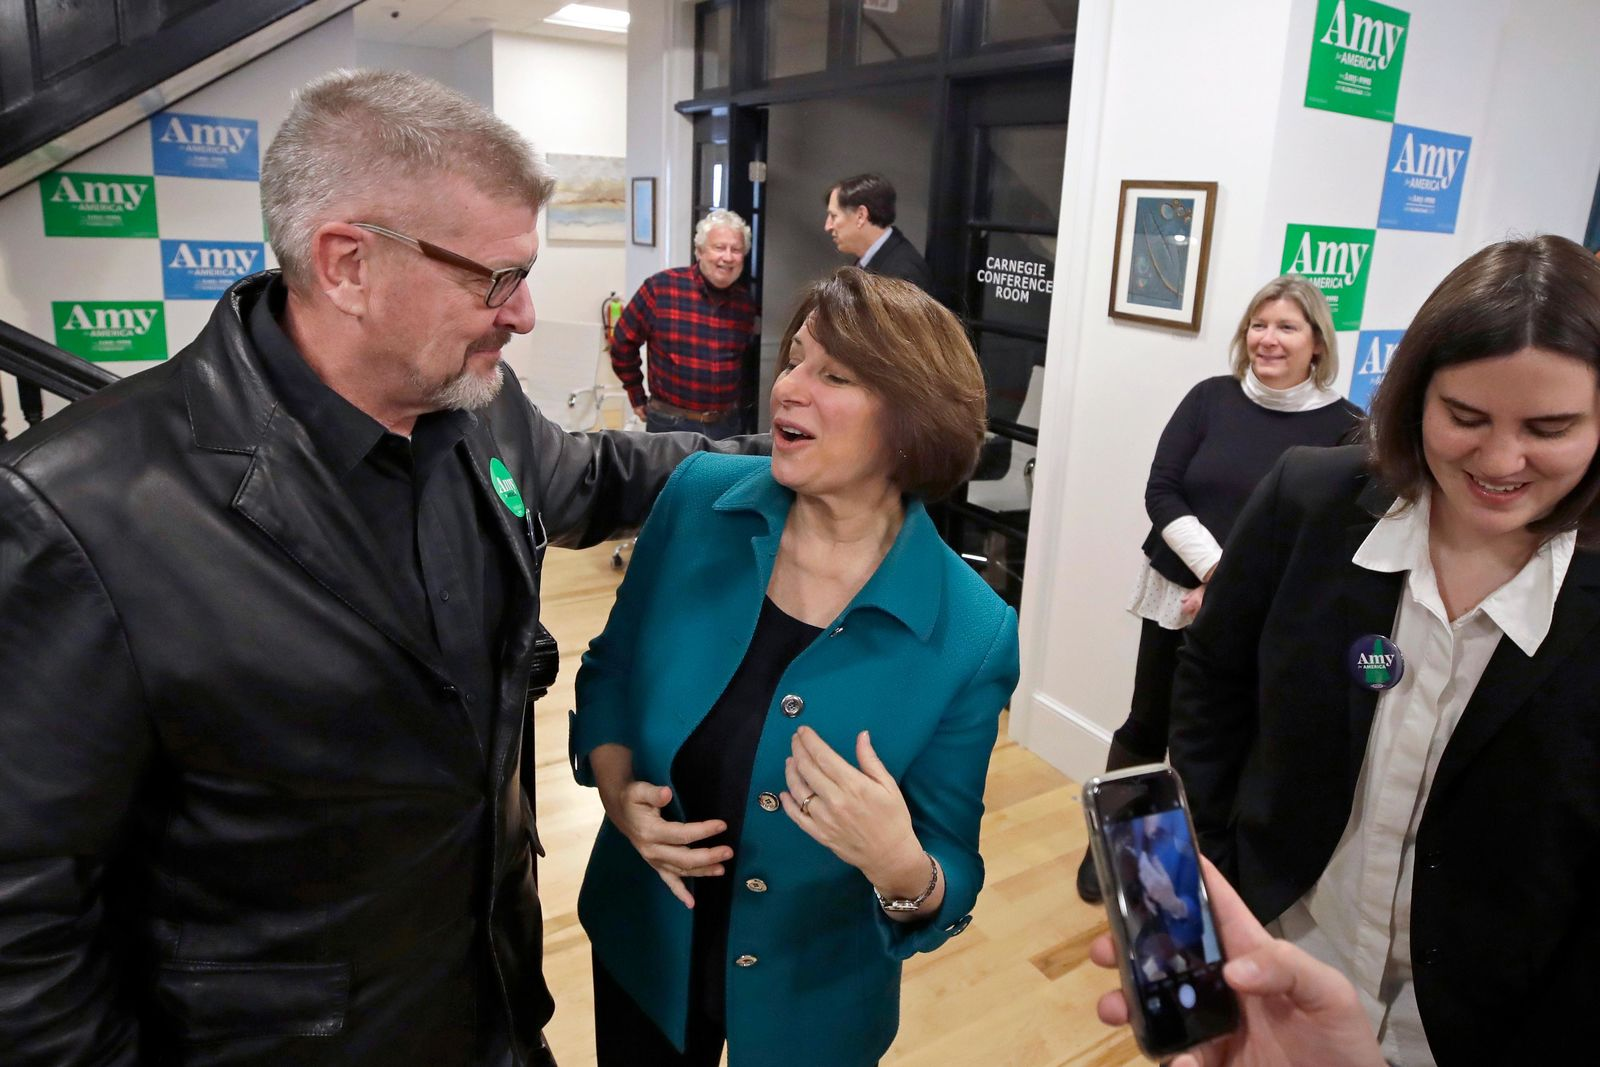 Democratic presidential candidate Sen. Amy Klobuchar, D-Minn., speaks to a potential voter at a campaign event, Tuesday, Dec. 3, 2019, in Milford, N.H. (AP Photo/Elise Amendola)